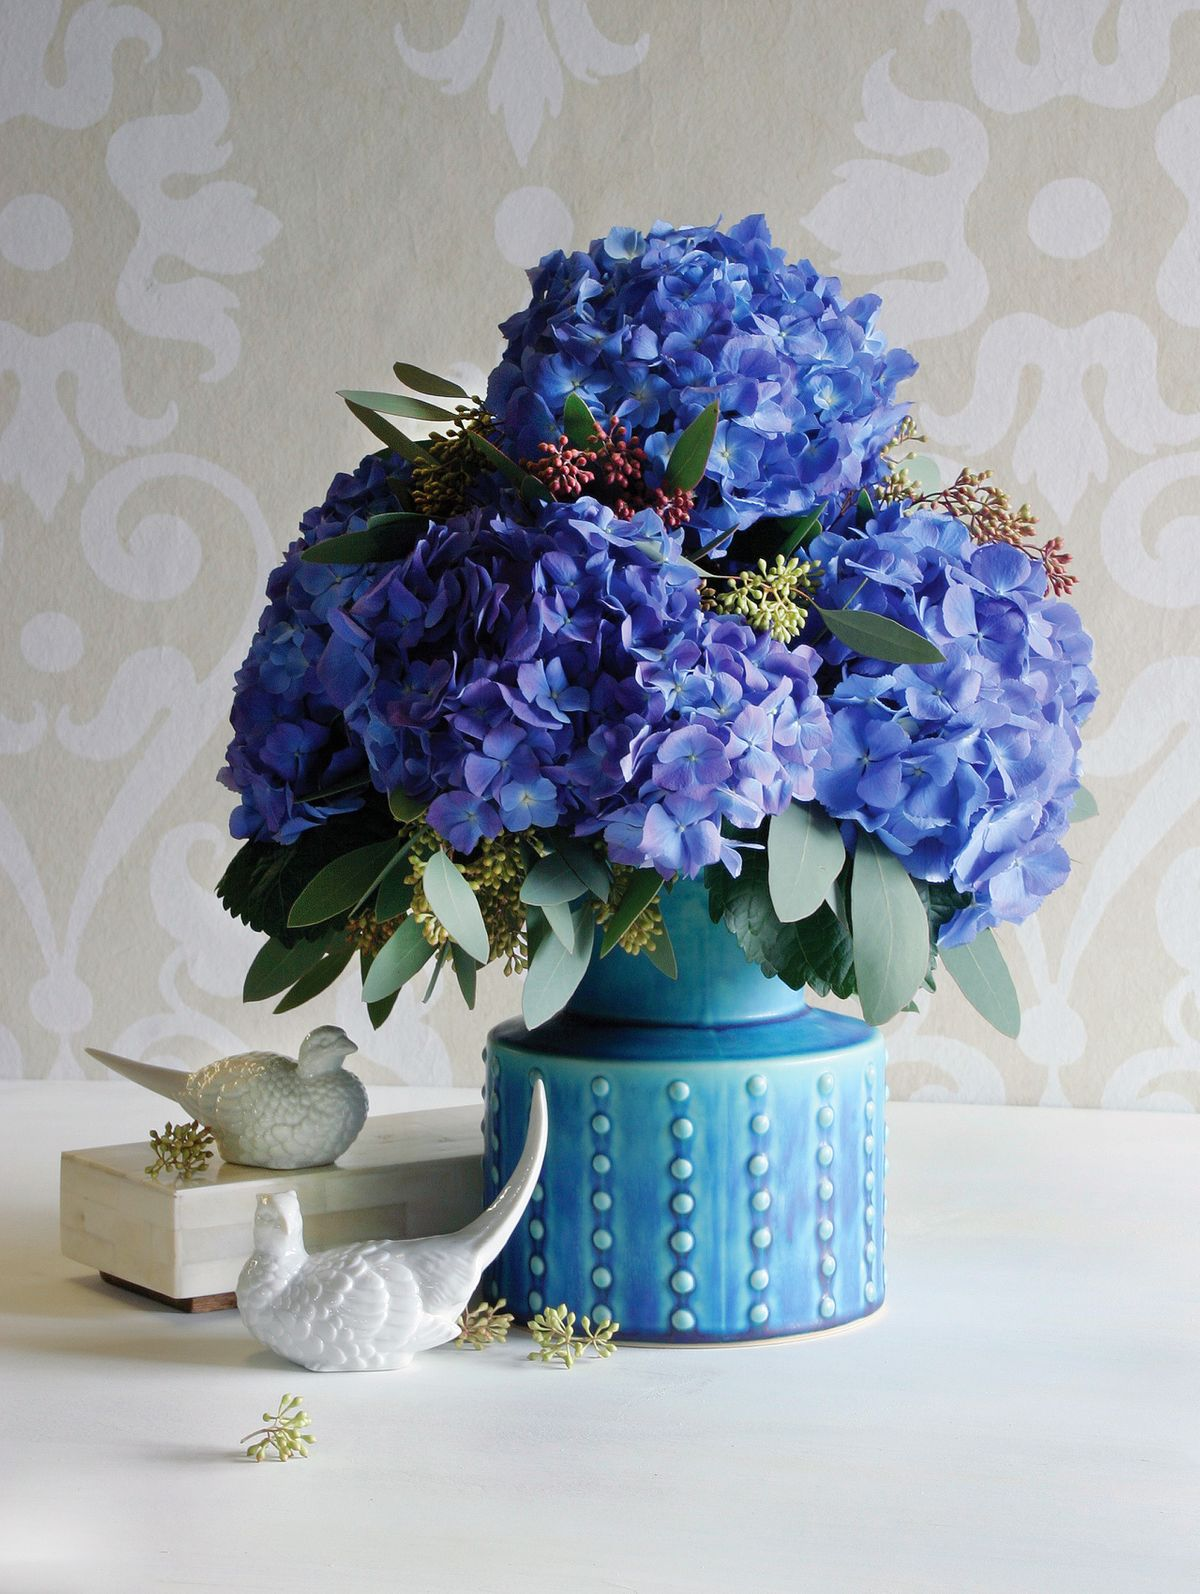 ChristopherWhite_HamptonsCottageandGardens_Hydrangea.jpg